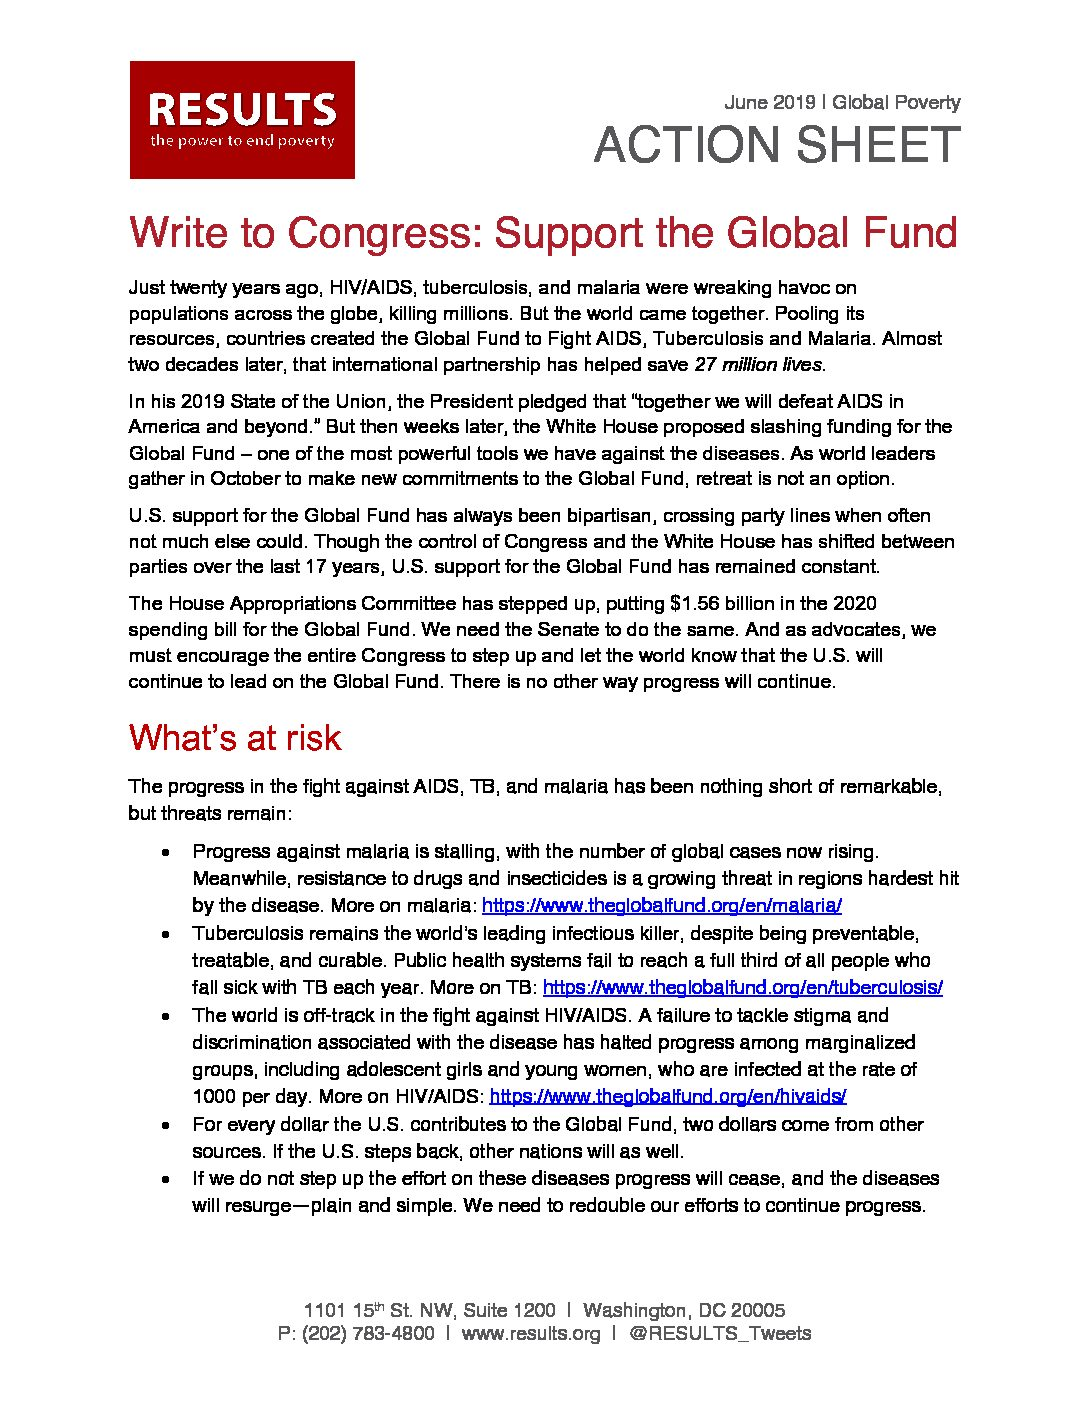 June 2019 Global Action Letter To Congress On The Global Fund